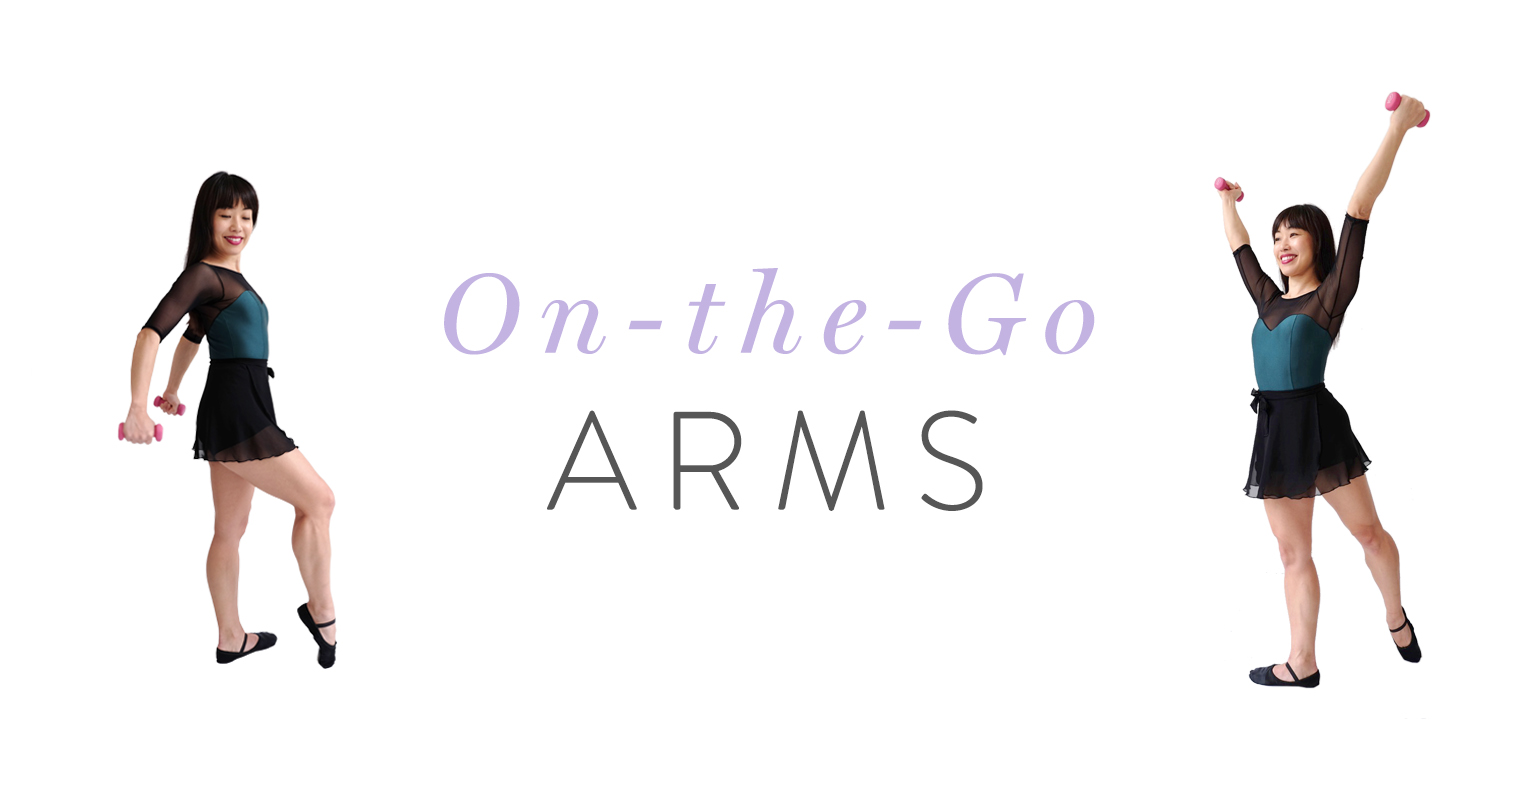 On - the - Go Arms!